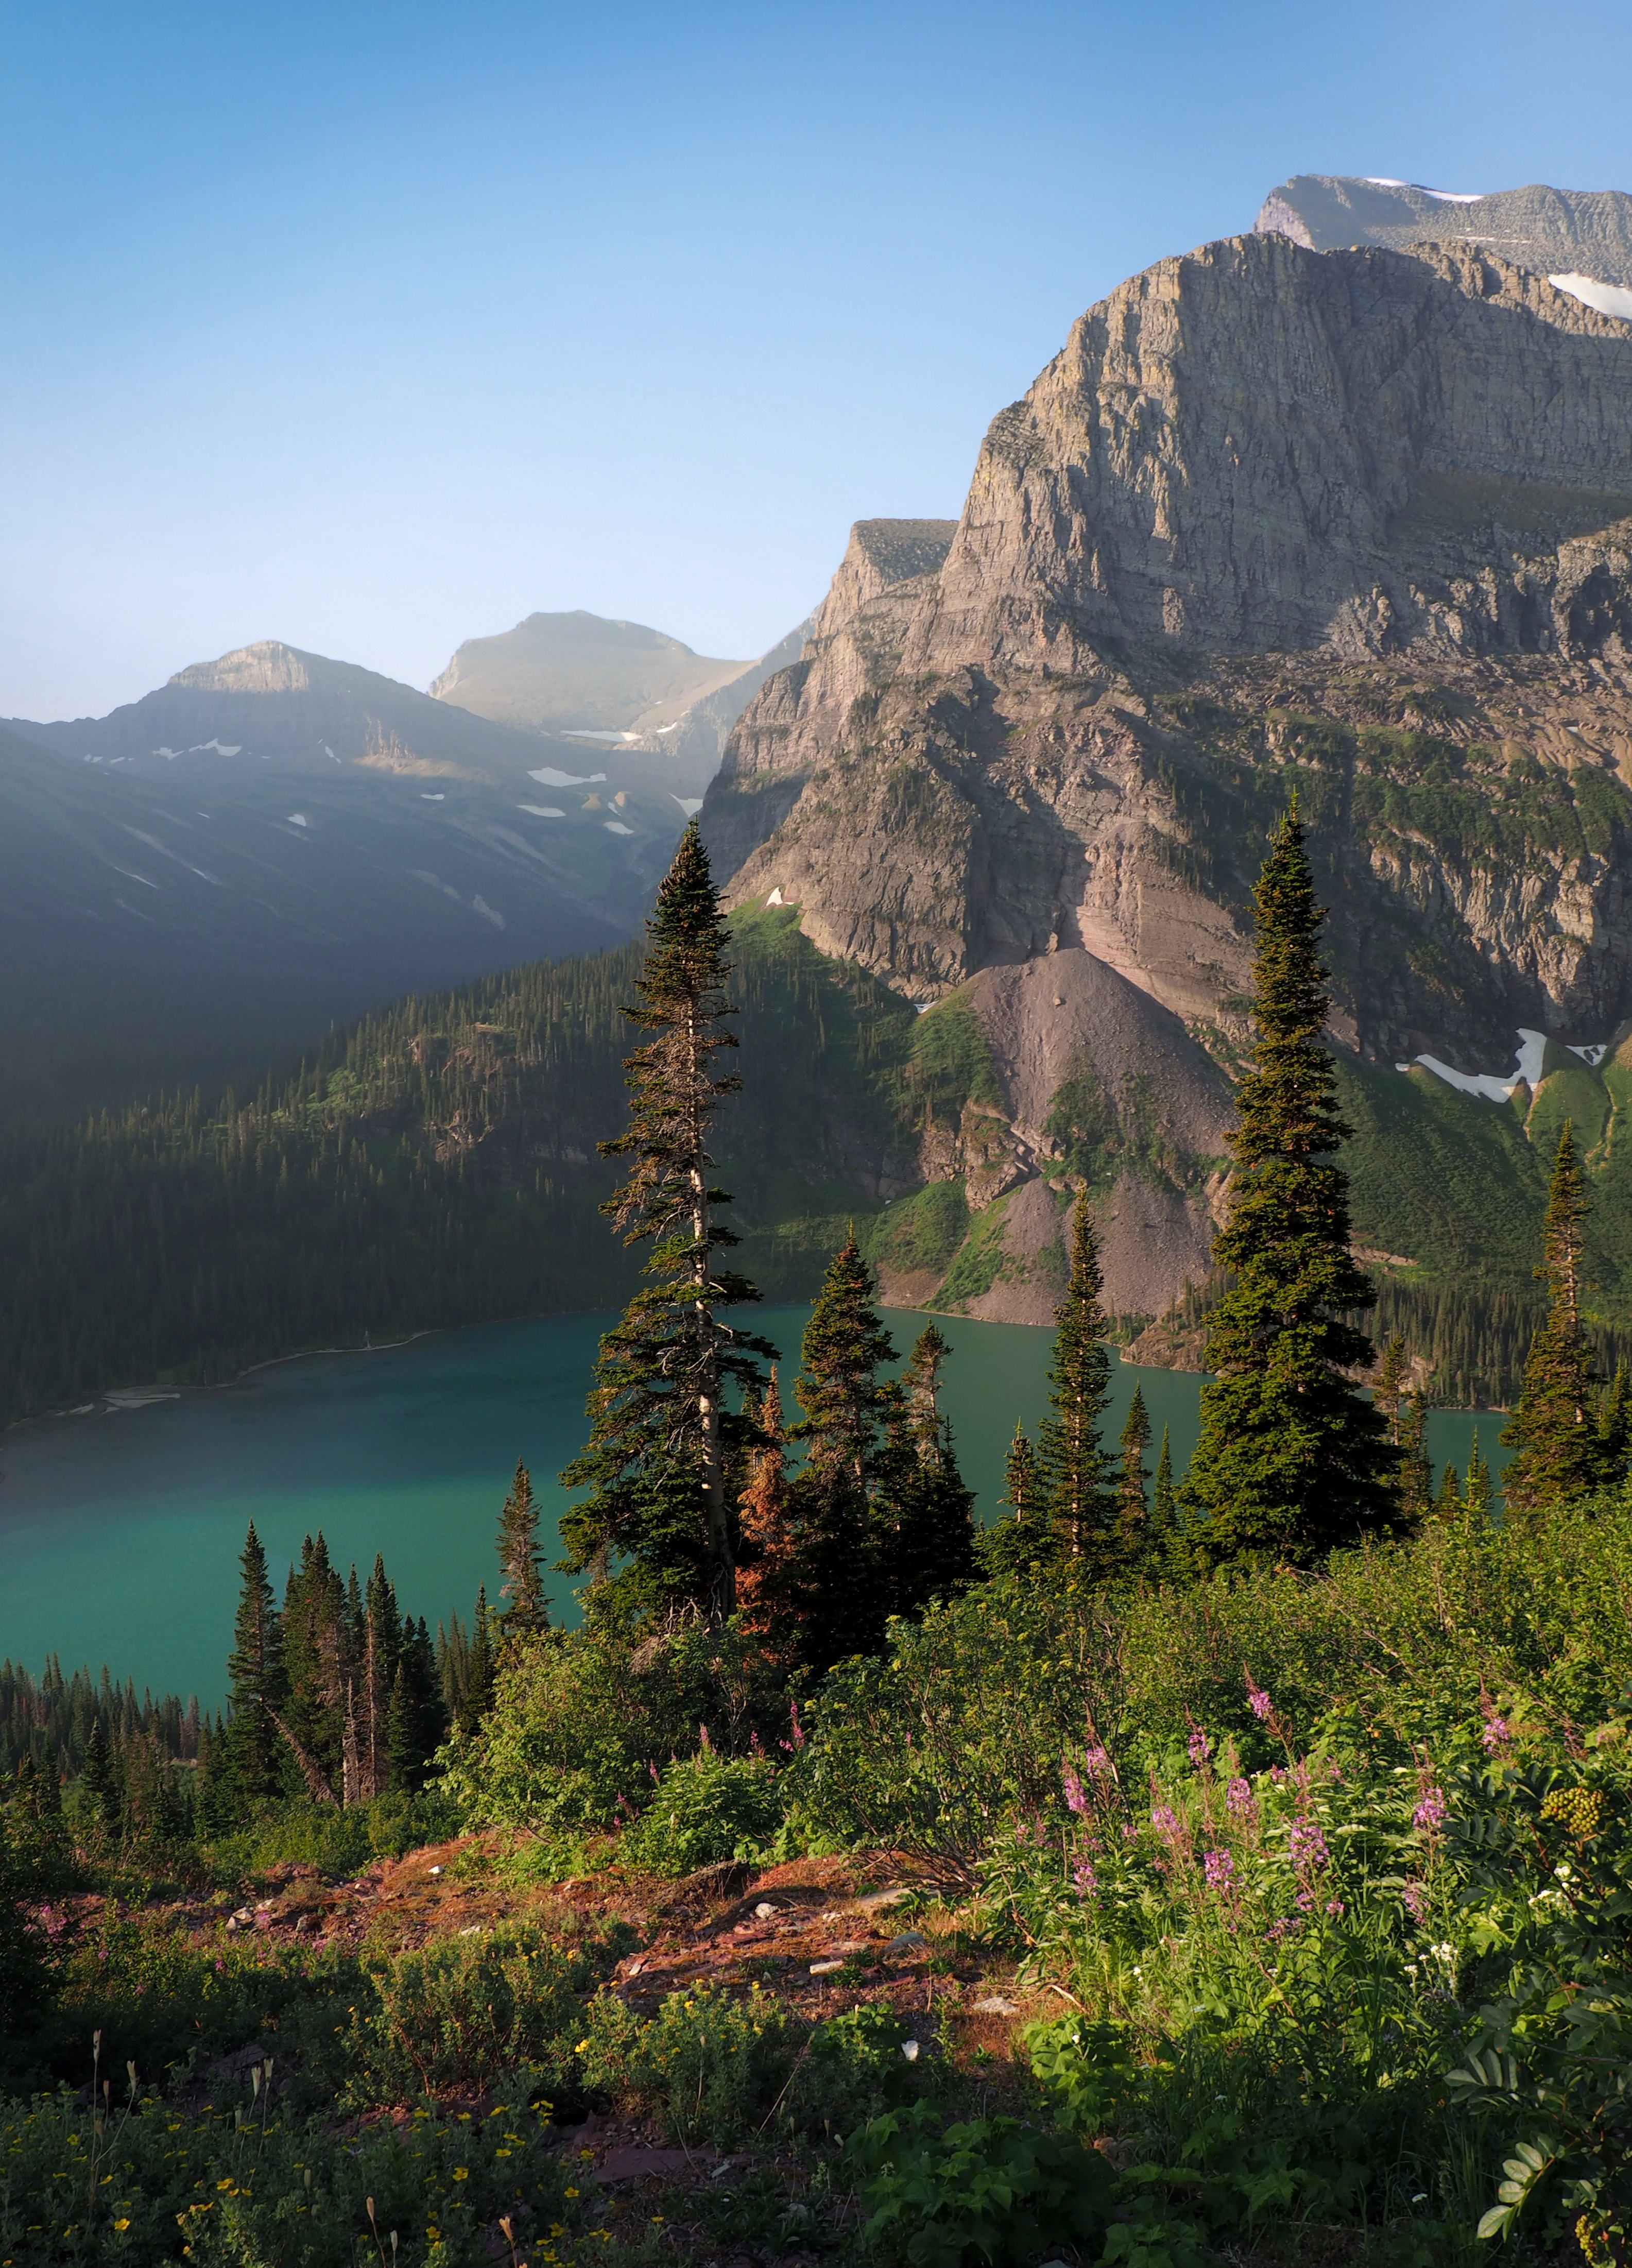 A morning shot from the Grinnell Glacier Trail in Glacier National Park, Montana, USA.